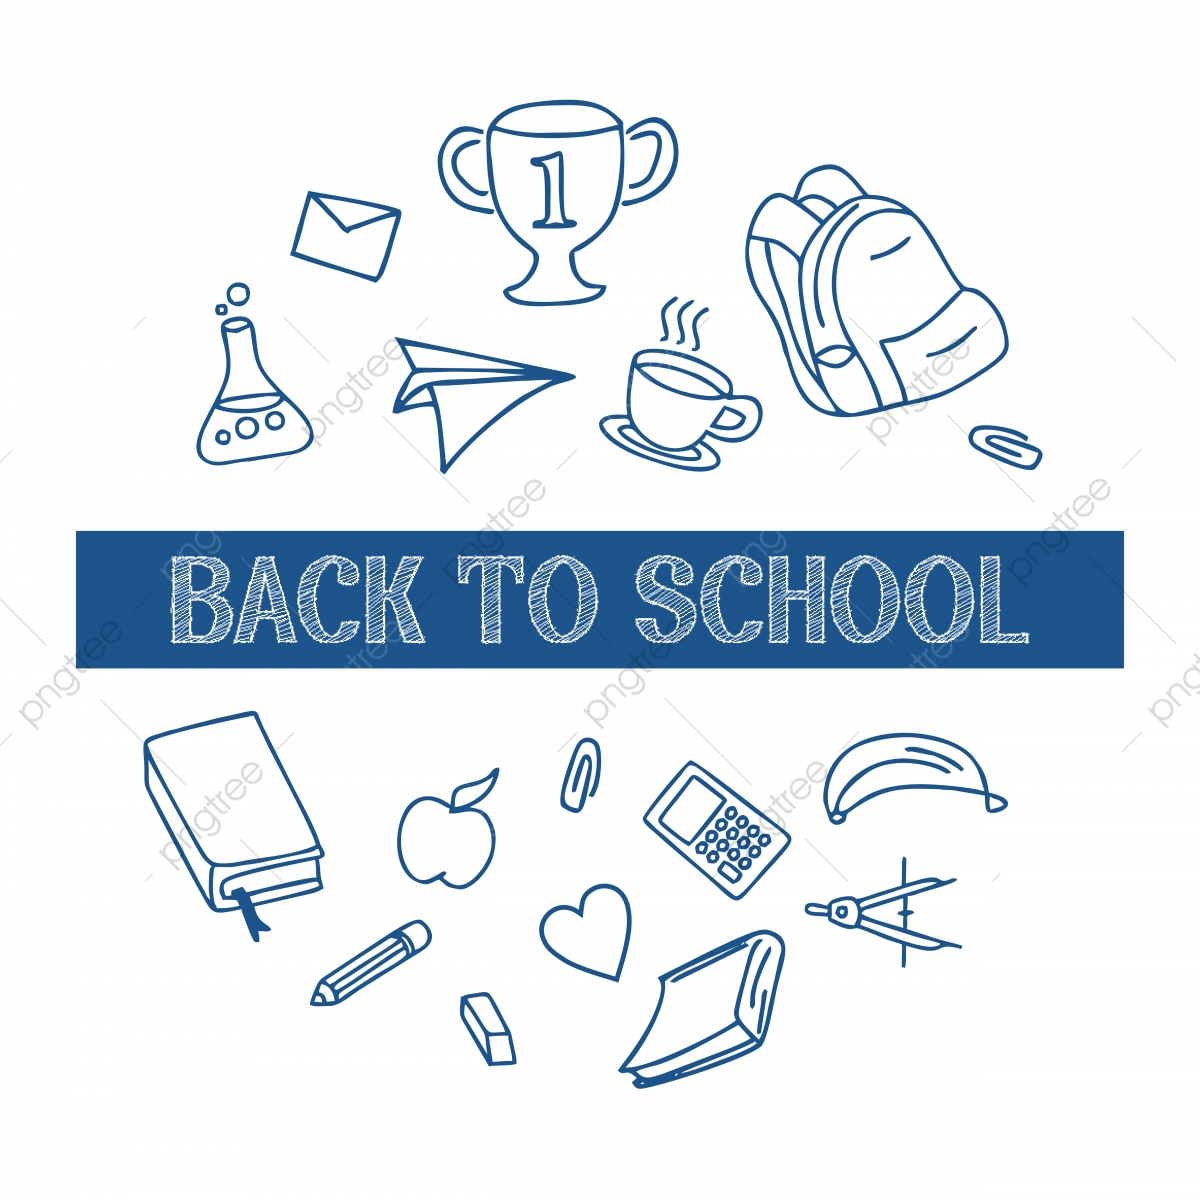 Back To School Background With Doodle Line Art, Sale, Background